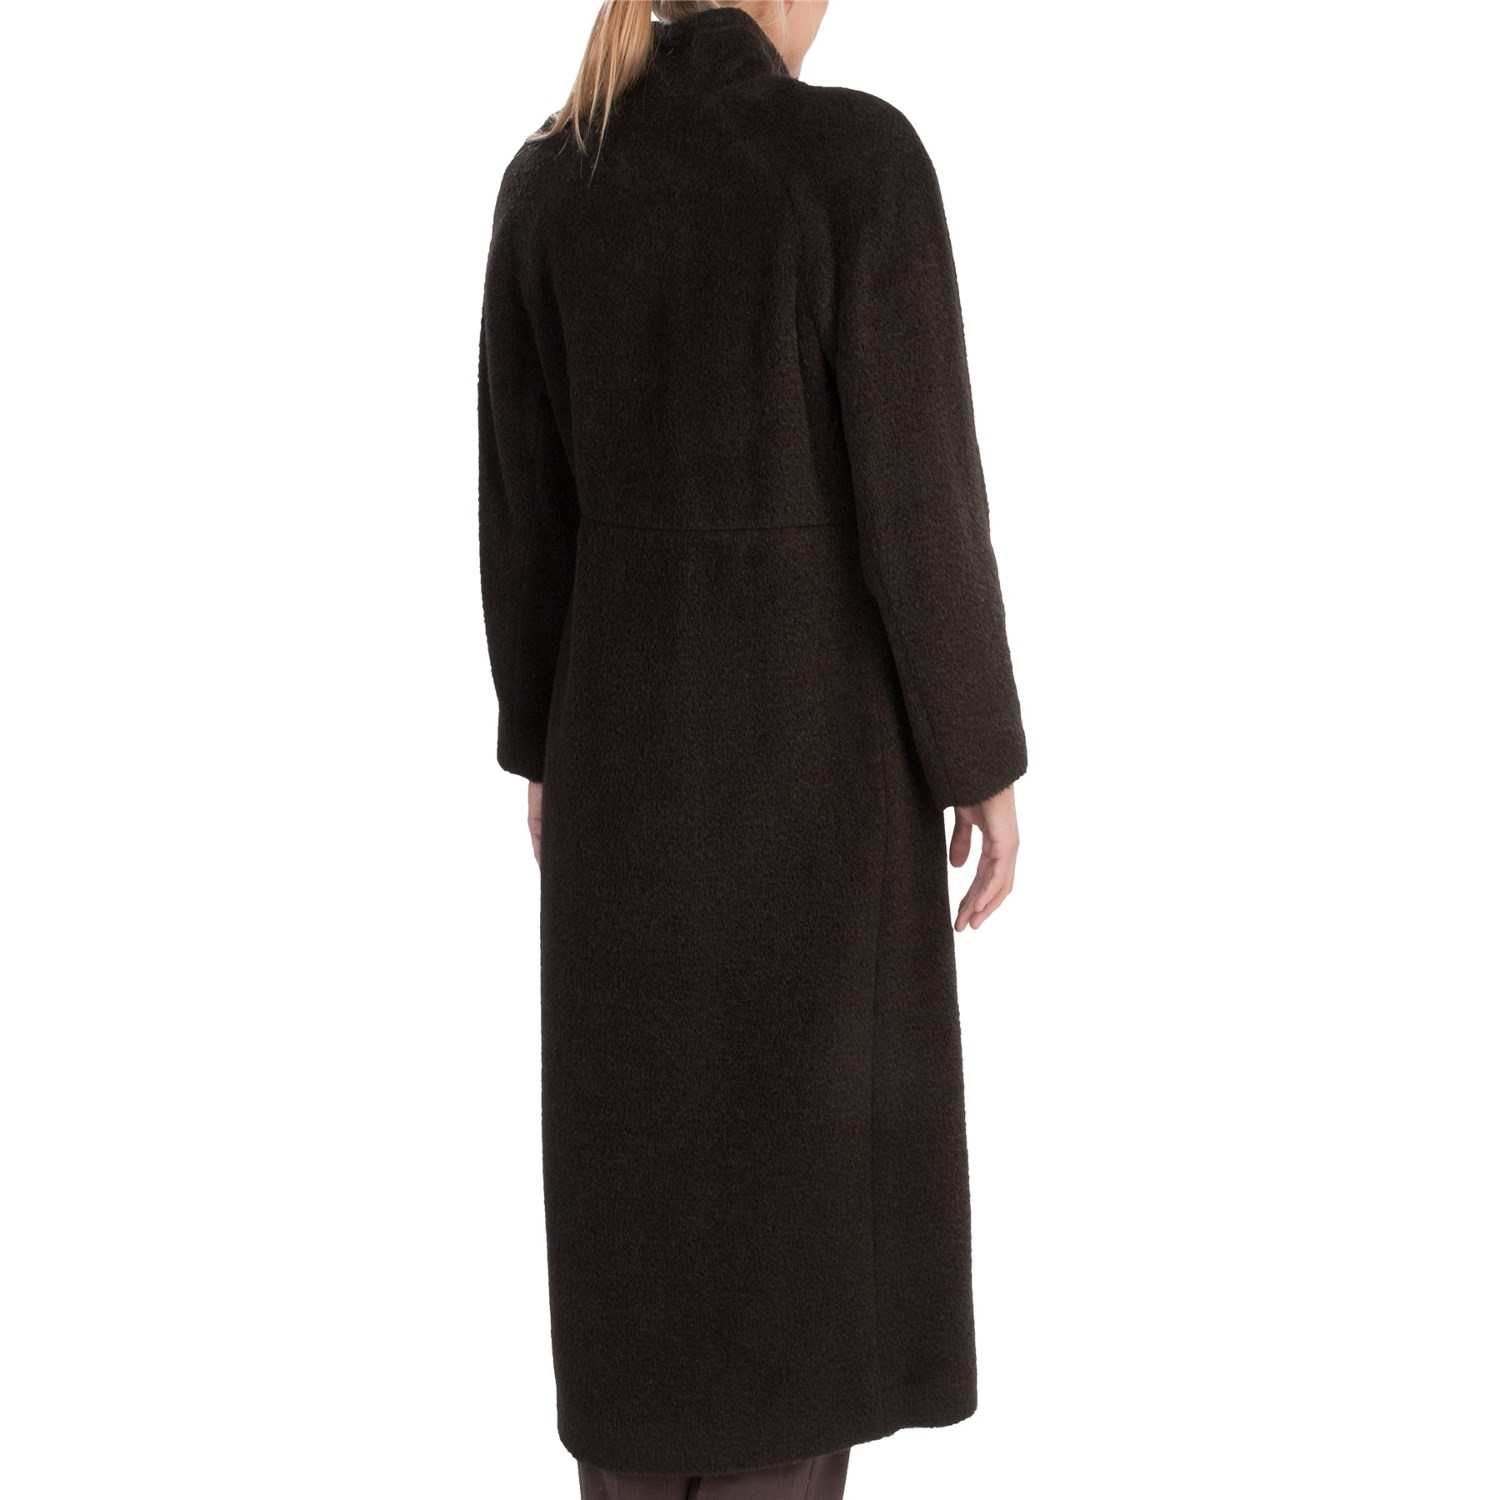 6620H_2 Sachi Collection Full-Length Coat - Suri Alpaca-Wool (For Women